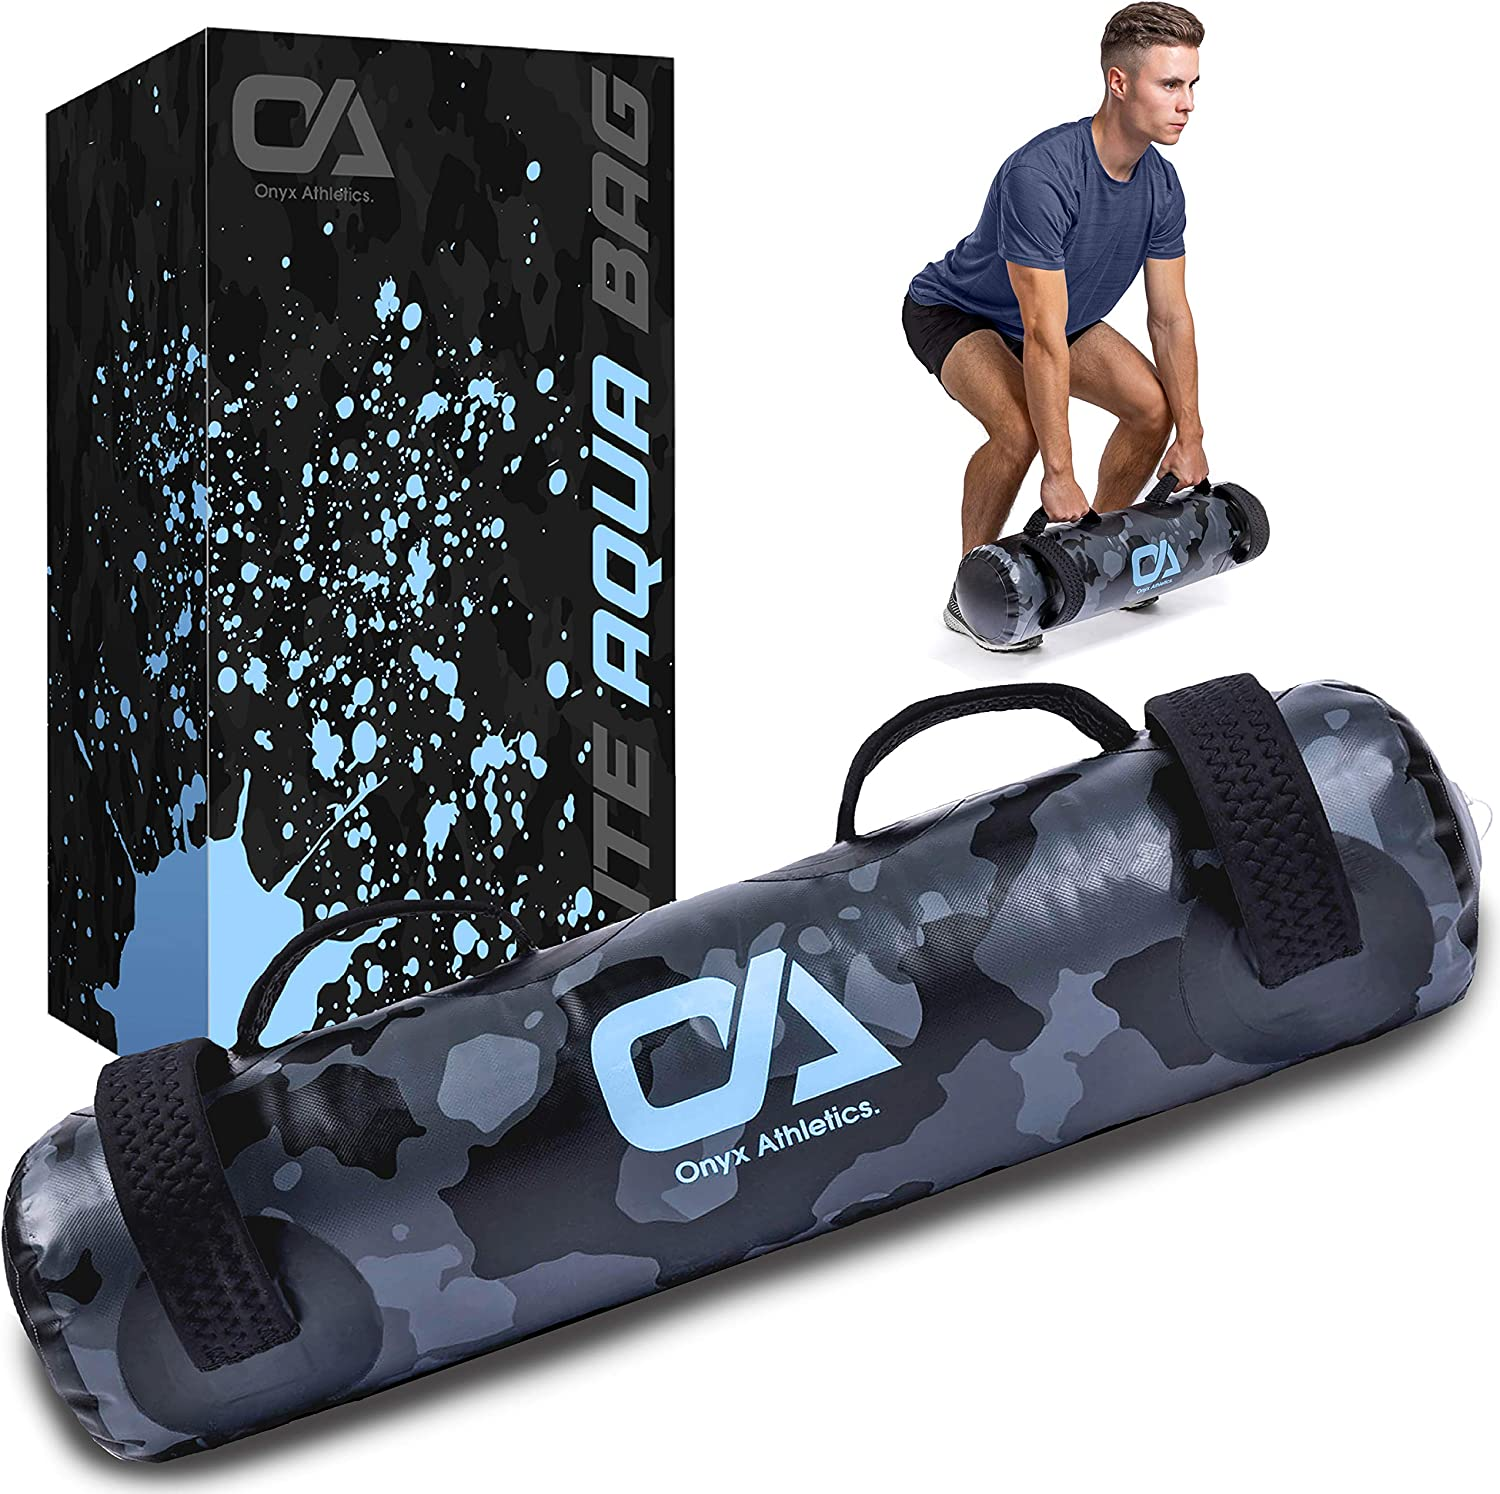 Onyx Athletics Elite Aqua Bag – Sandbags for Fitness with Water and Upgraded Air Pump – Adjustable Weighted Water Bag with Strong Handles – Perfect for Core and Balance Trainings - 45 LBS